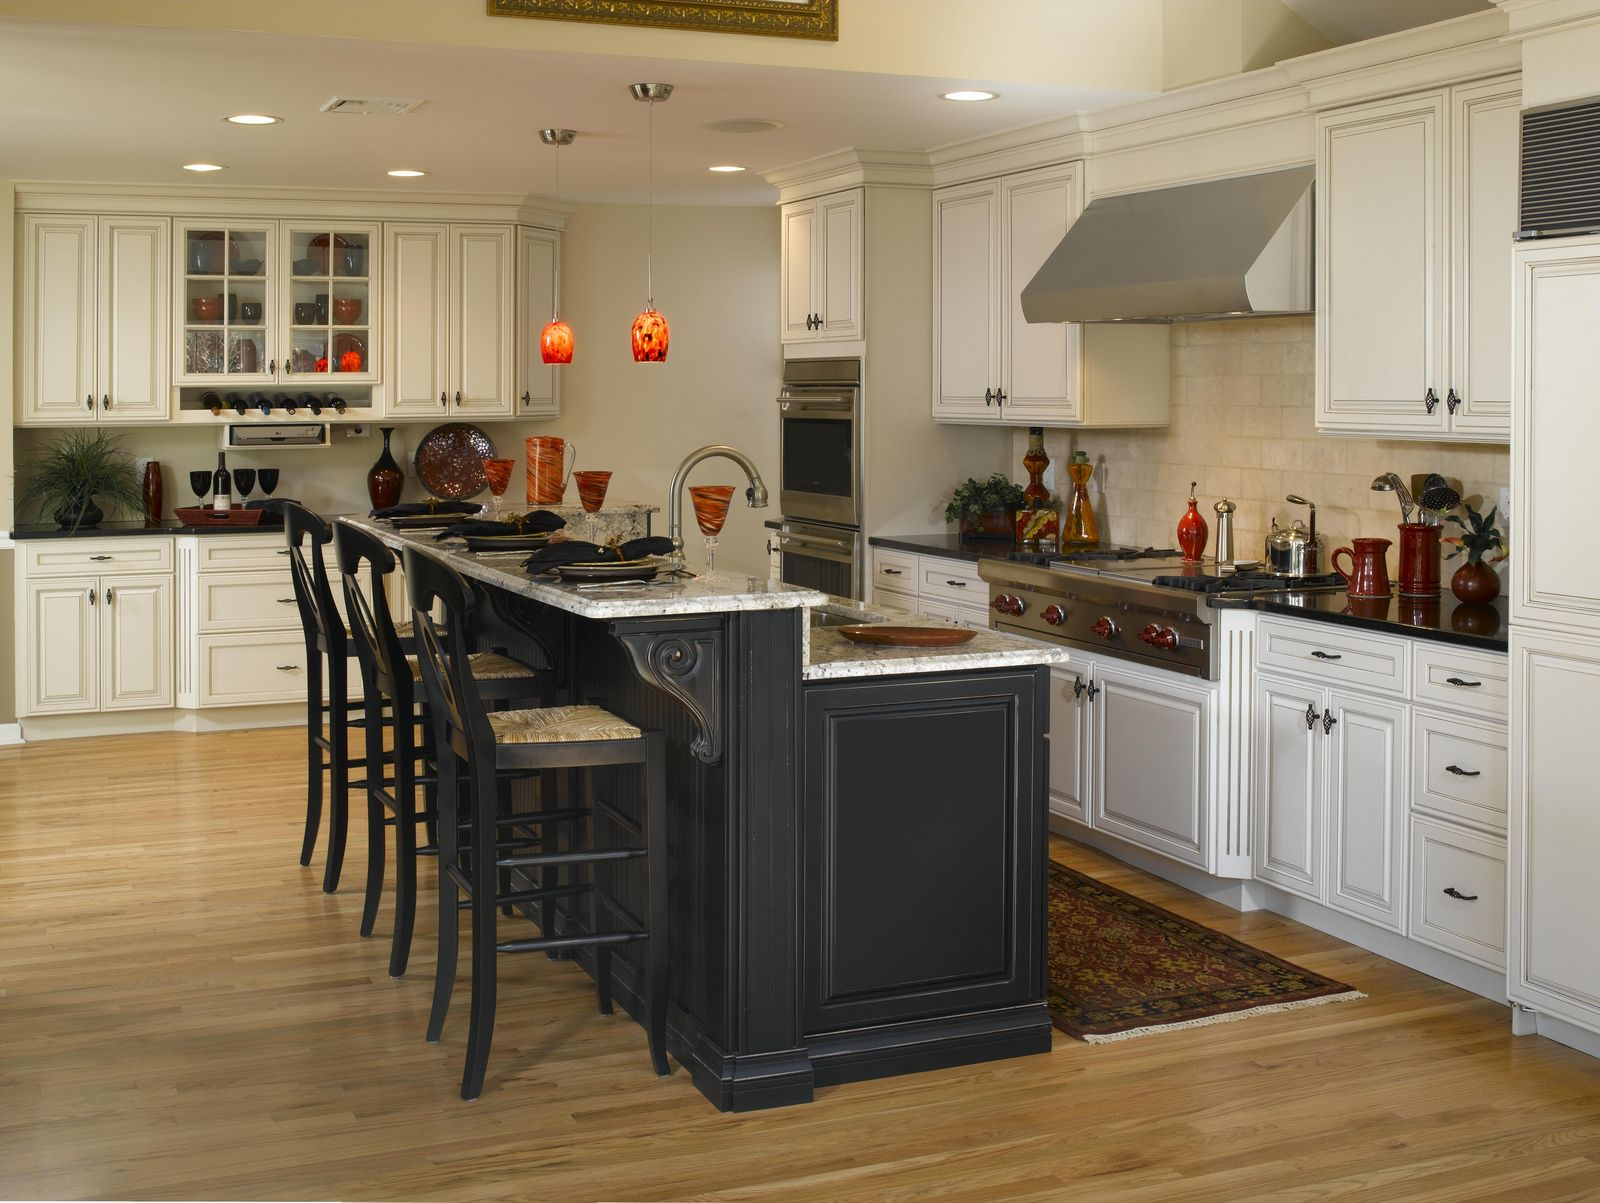 Images Of Kitchen Islands With Two Levels Kitchen Island Kitchen